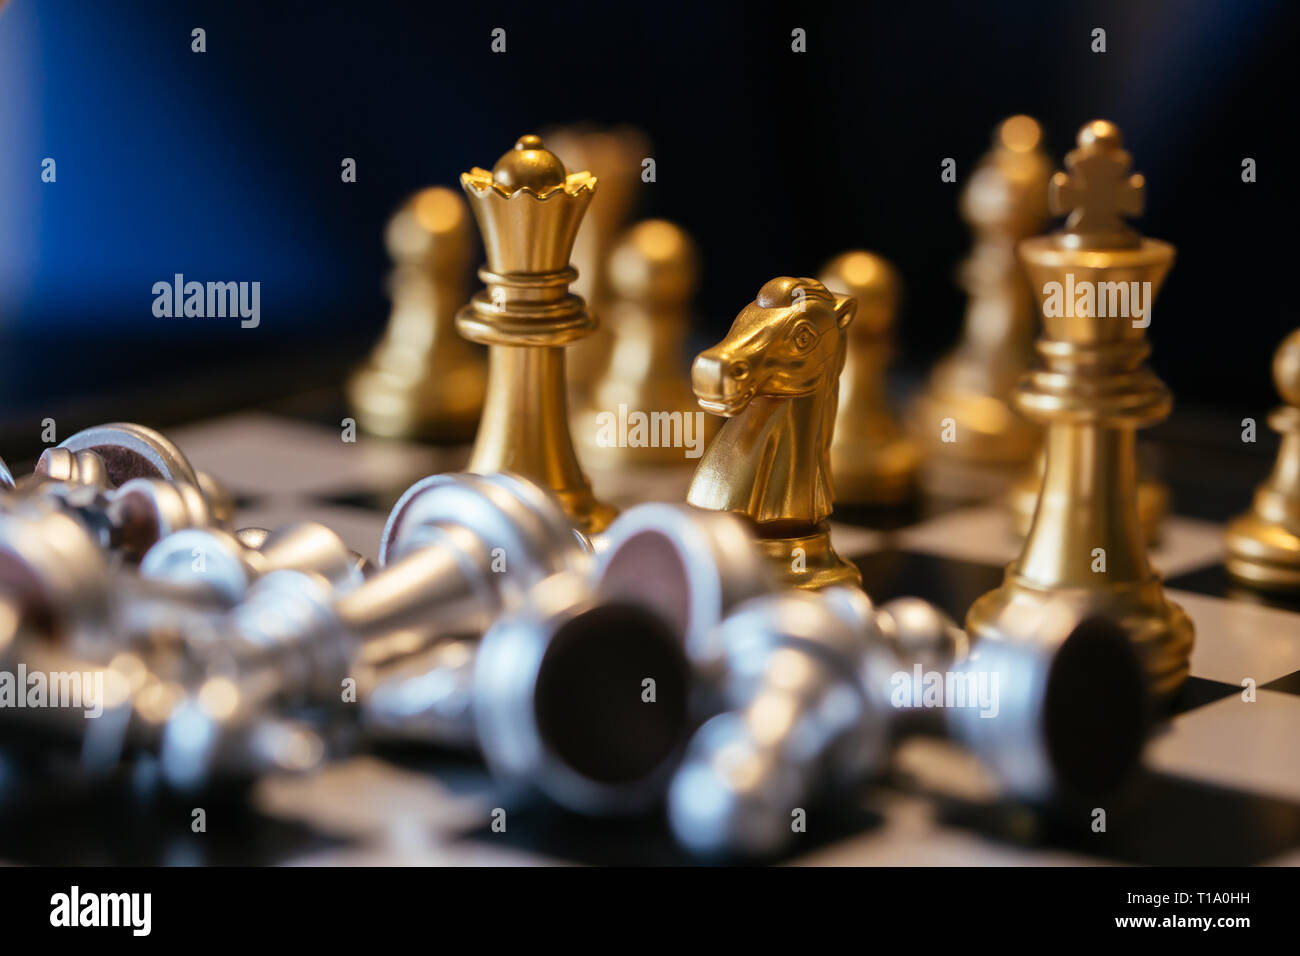 Gold Chess Pieces Golden Chess Pieces Stock Photos Golden Chess Pieces Stock